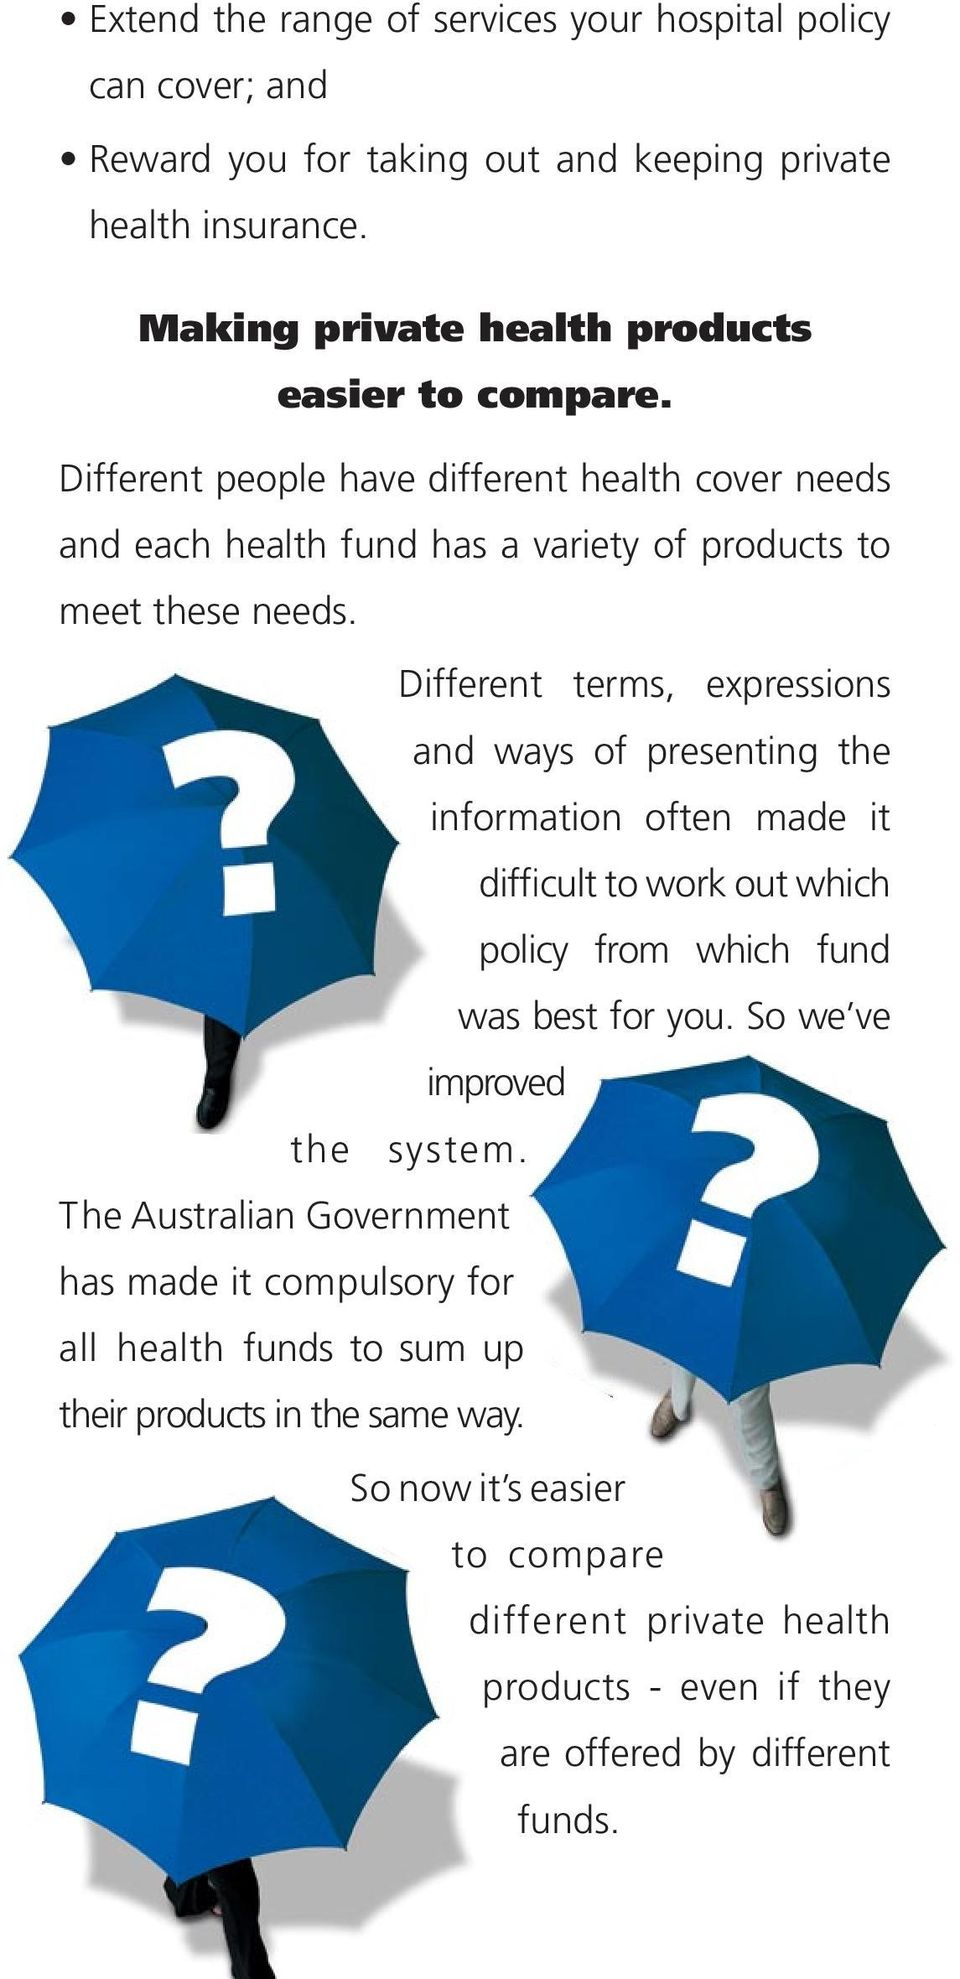 Different terms, expressions and ways of presenting the information often made it difficult to work out which policy from which fund was best for you.